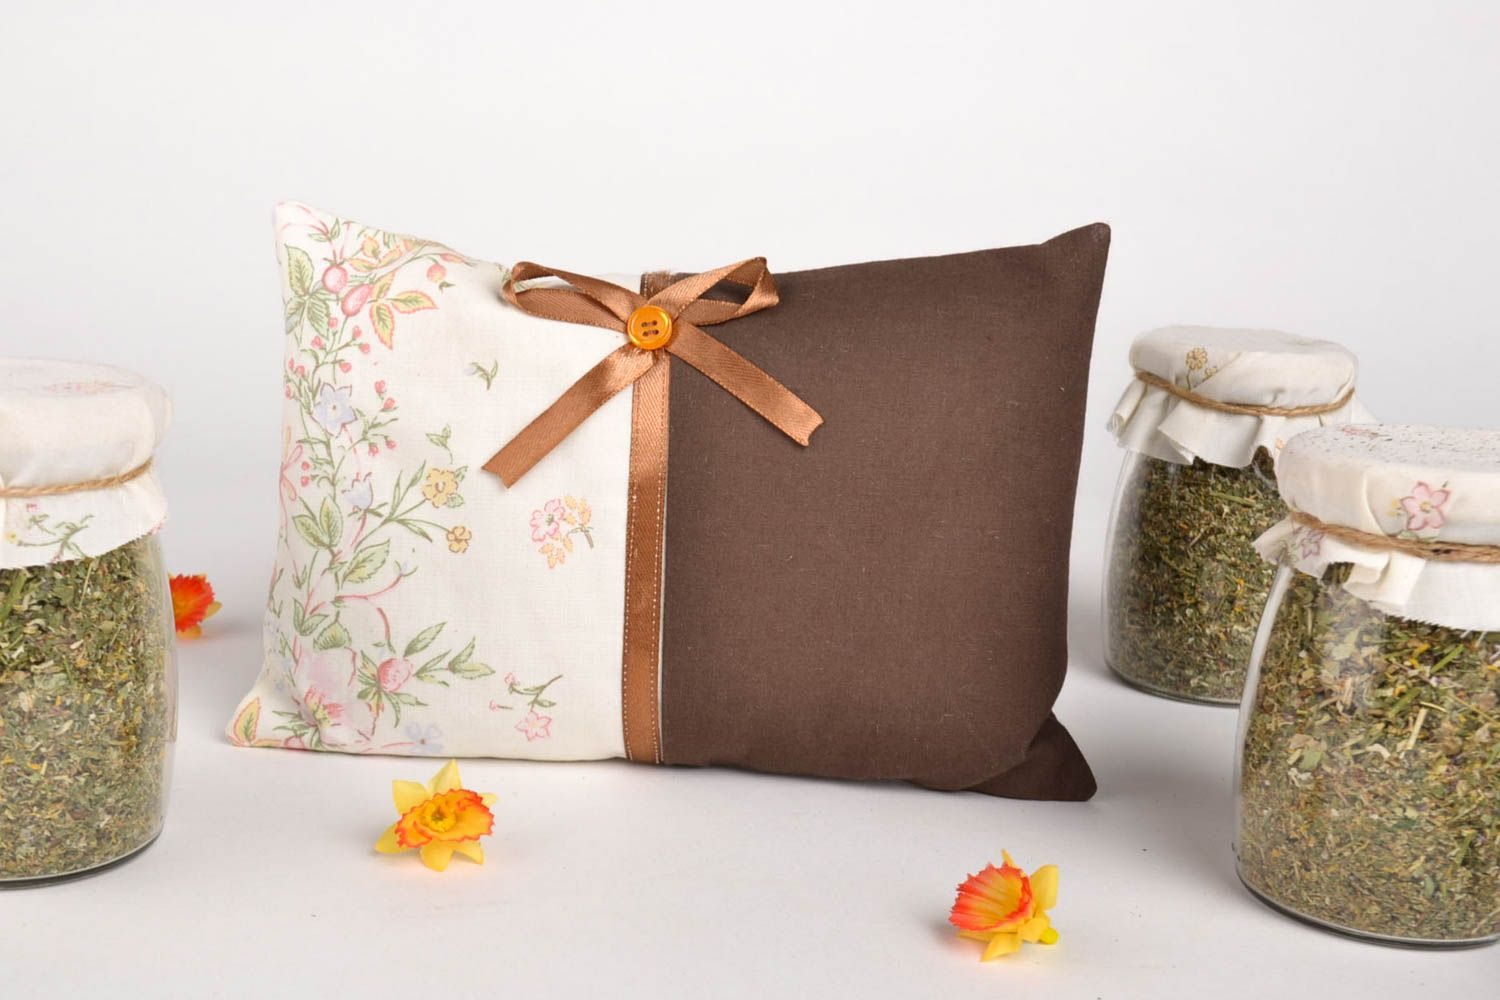 Homemade sachet pillow scented sachet aroma therapy home decor gifts for mom photo 1